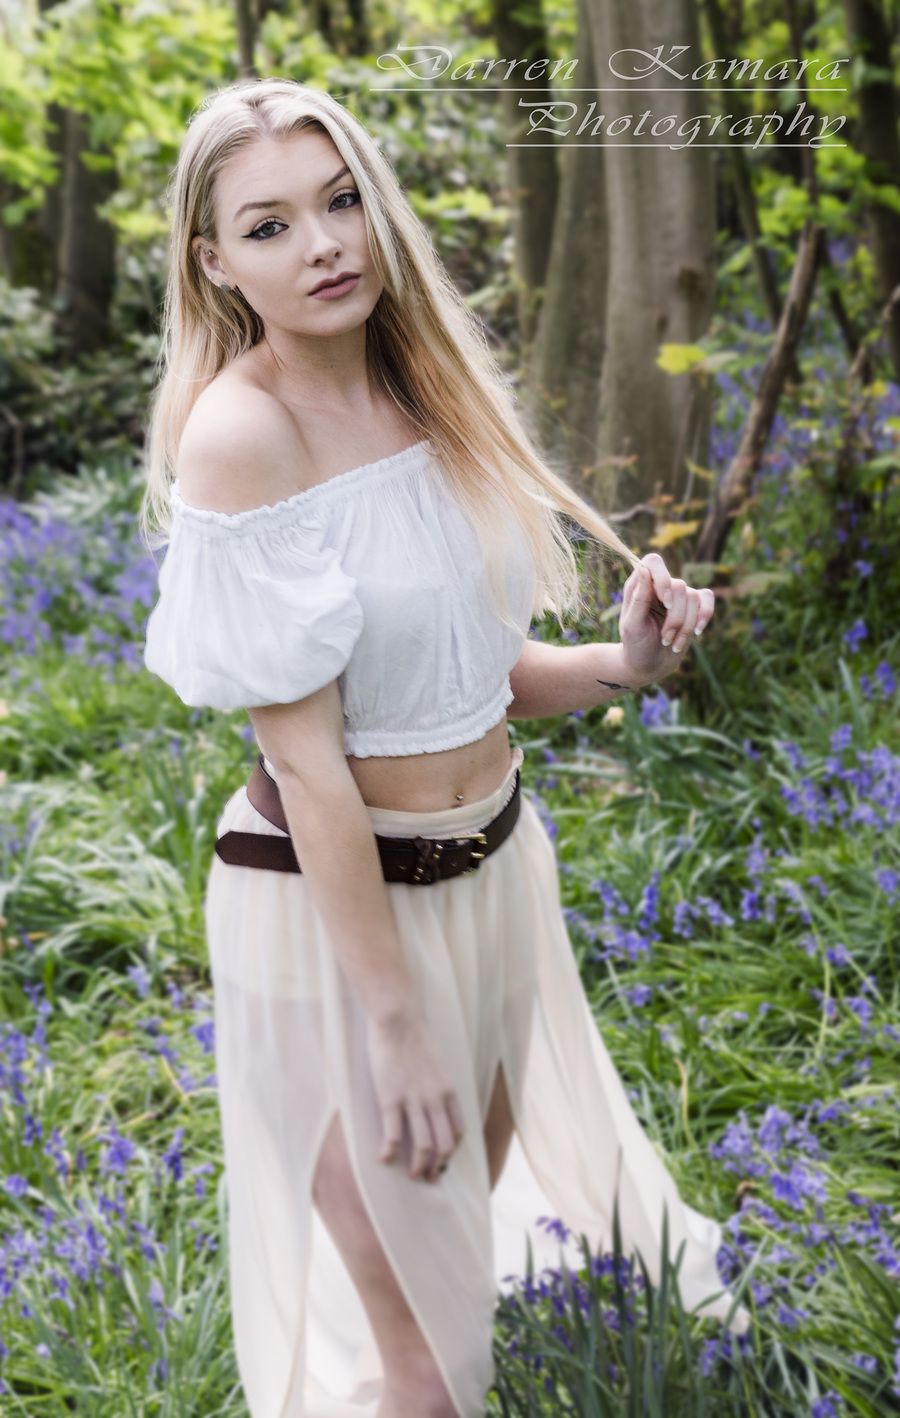 Babe in the woods / Photography by dekkx1, Post processing by dekkx1 / Uploaded 25th April 2017 @ 07:58 AM